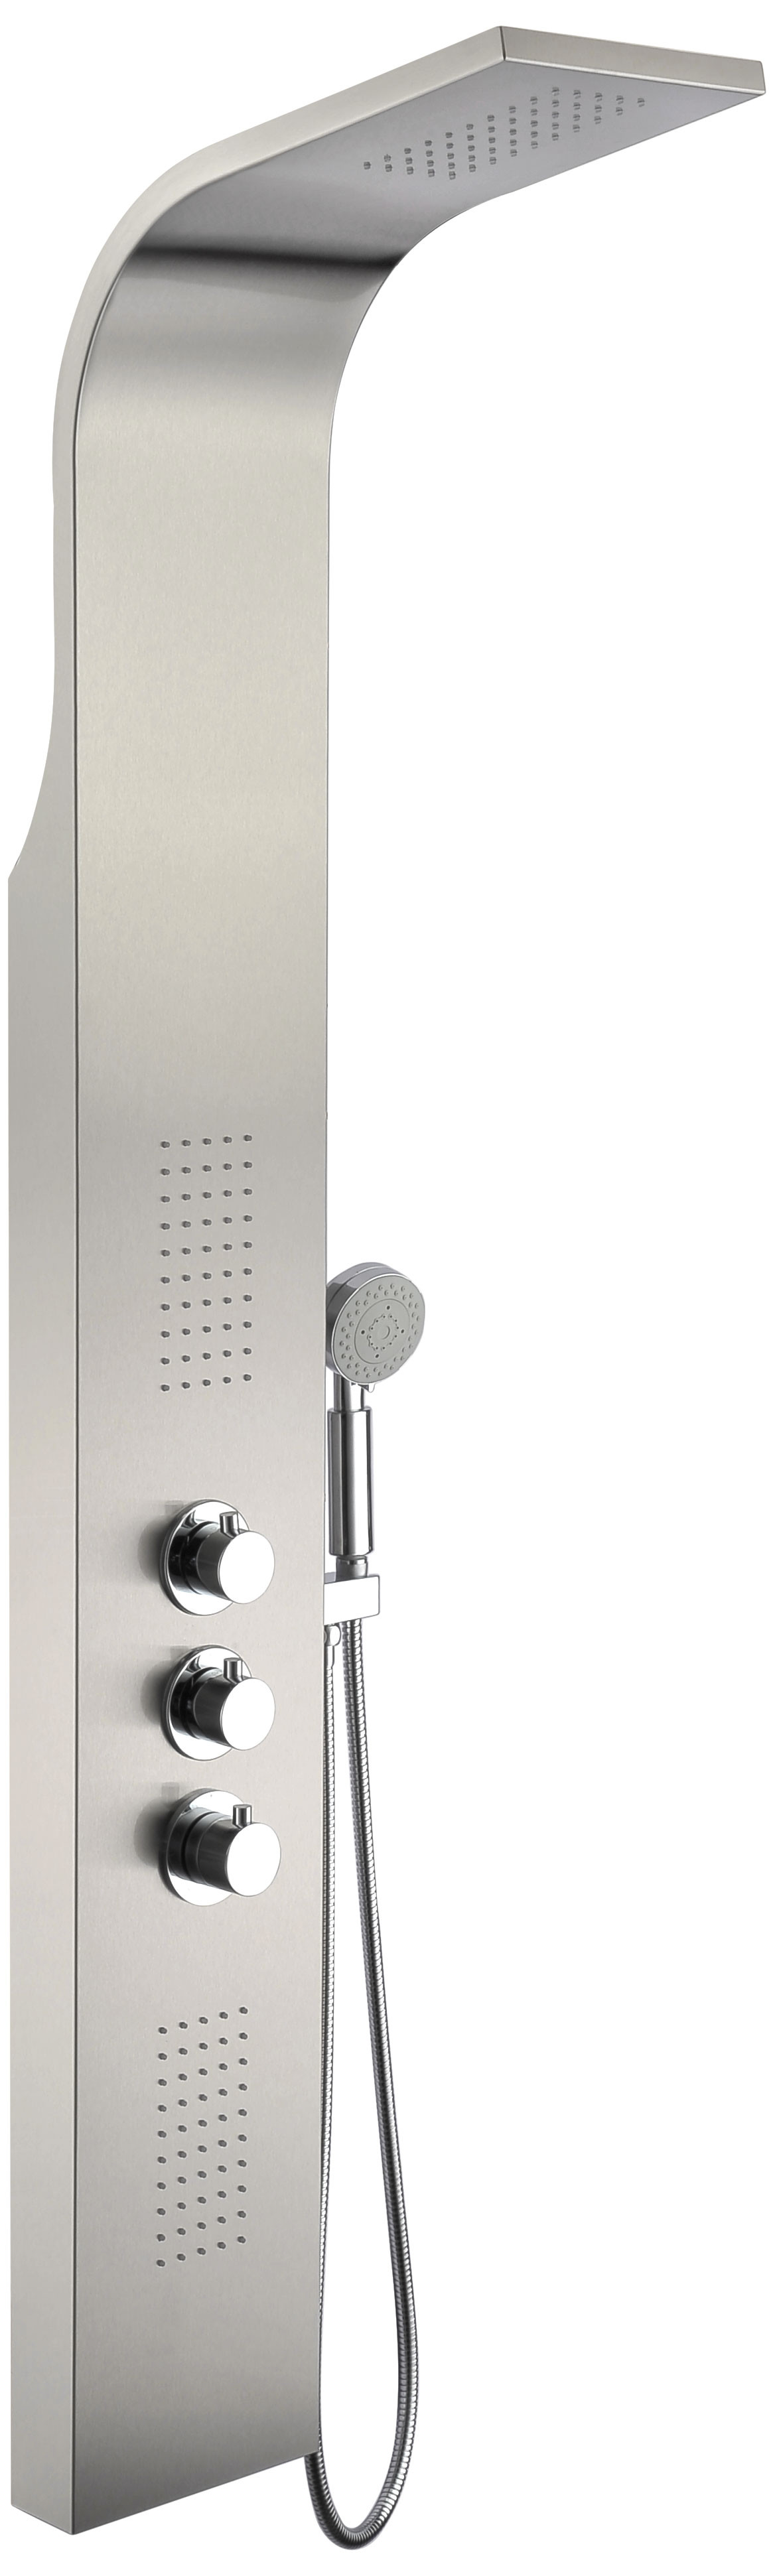 ANZZI SP-AZ024 Arc Wall Mount Shower Panel In Brushed Stainless Steel